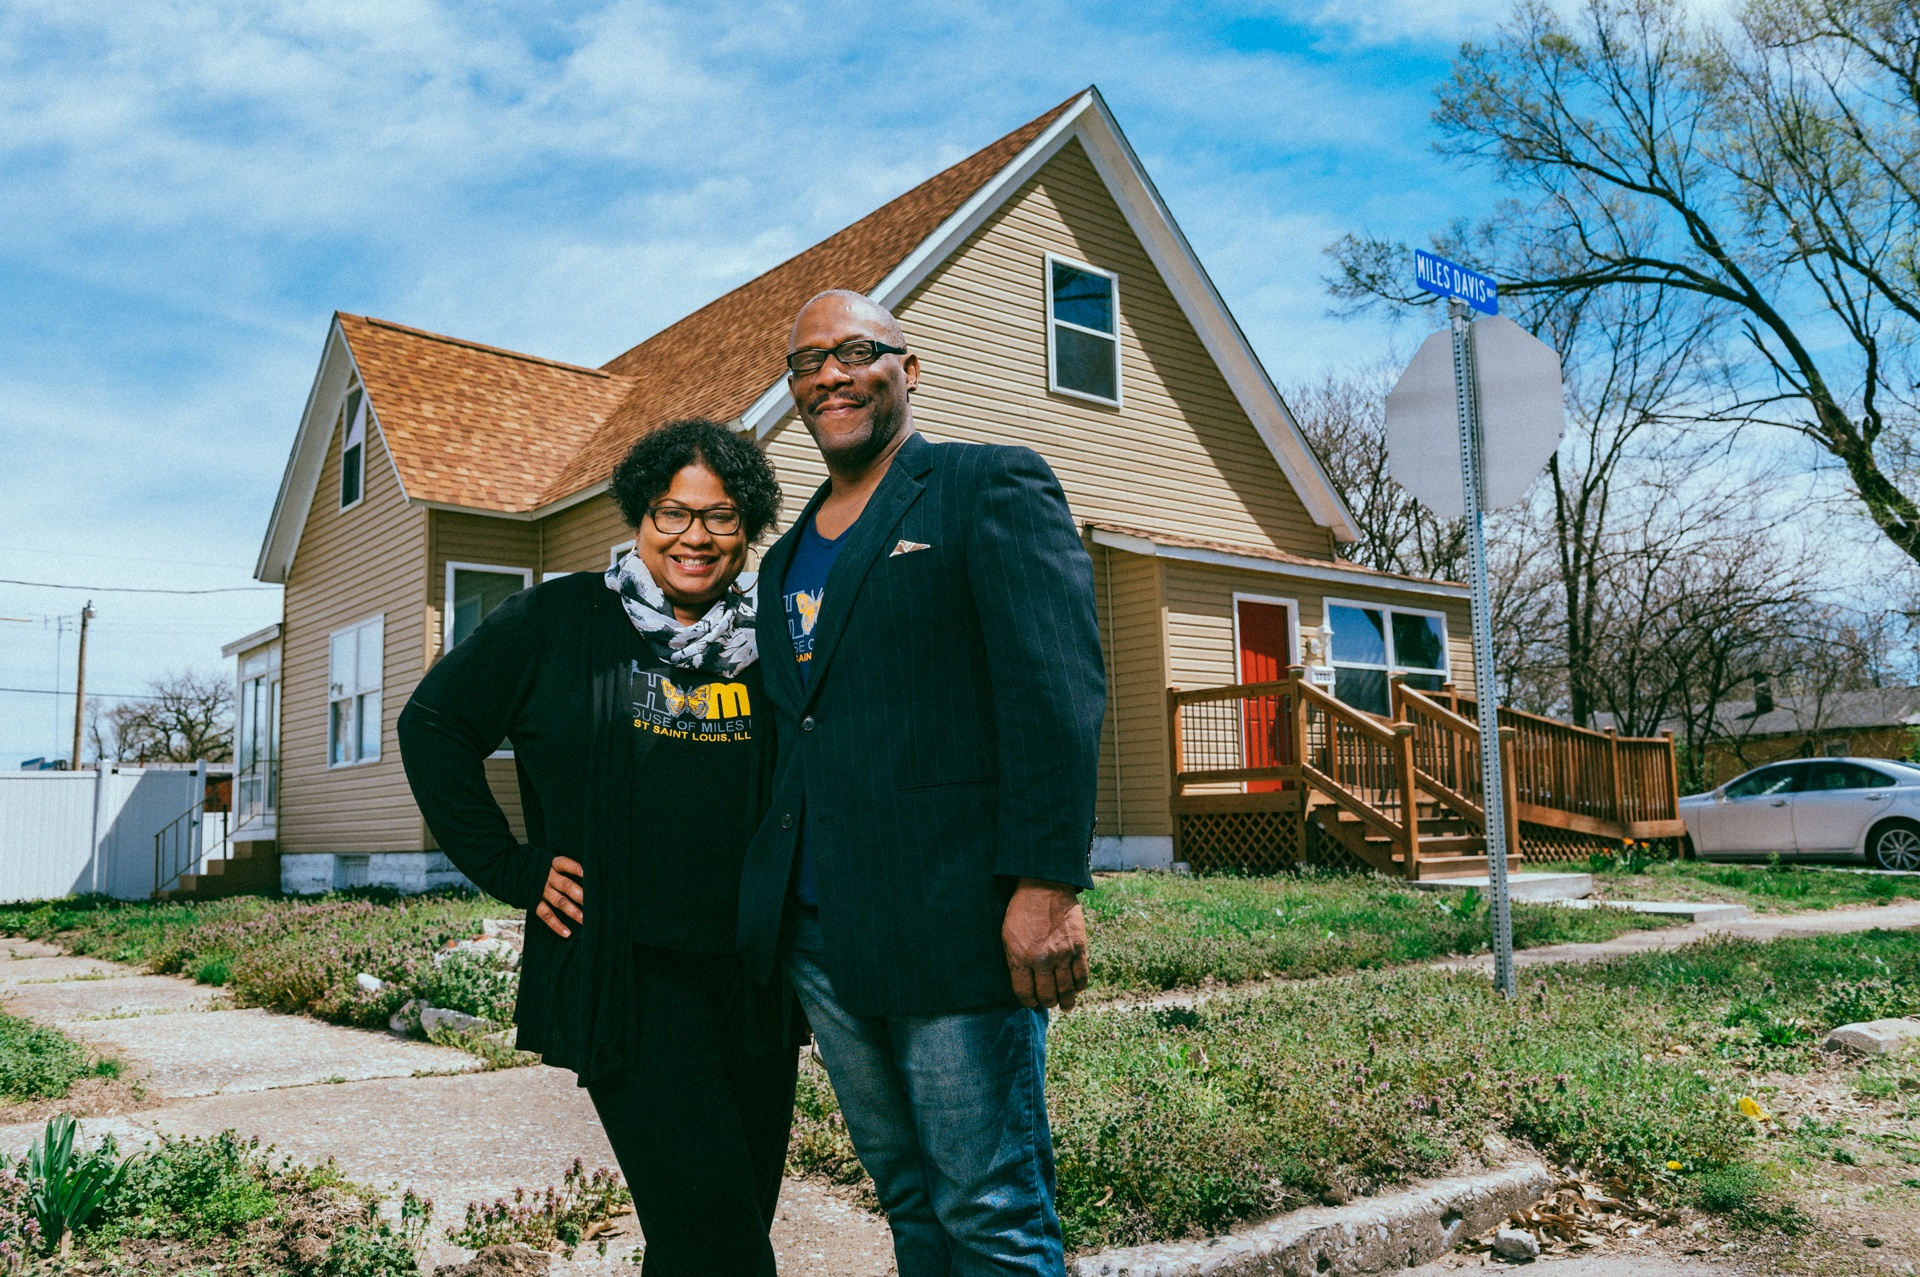 Lauren Parks and Jas Gary Pearson outside the childhood home of Miles Davis